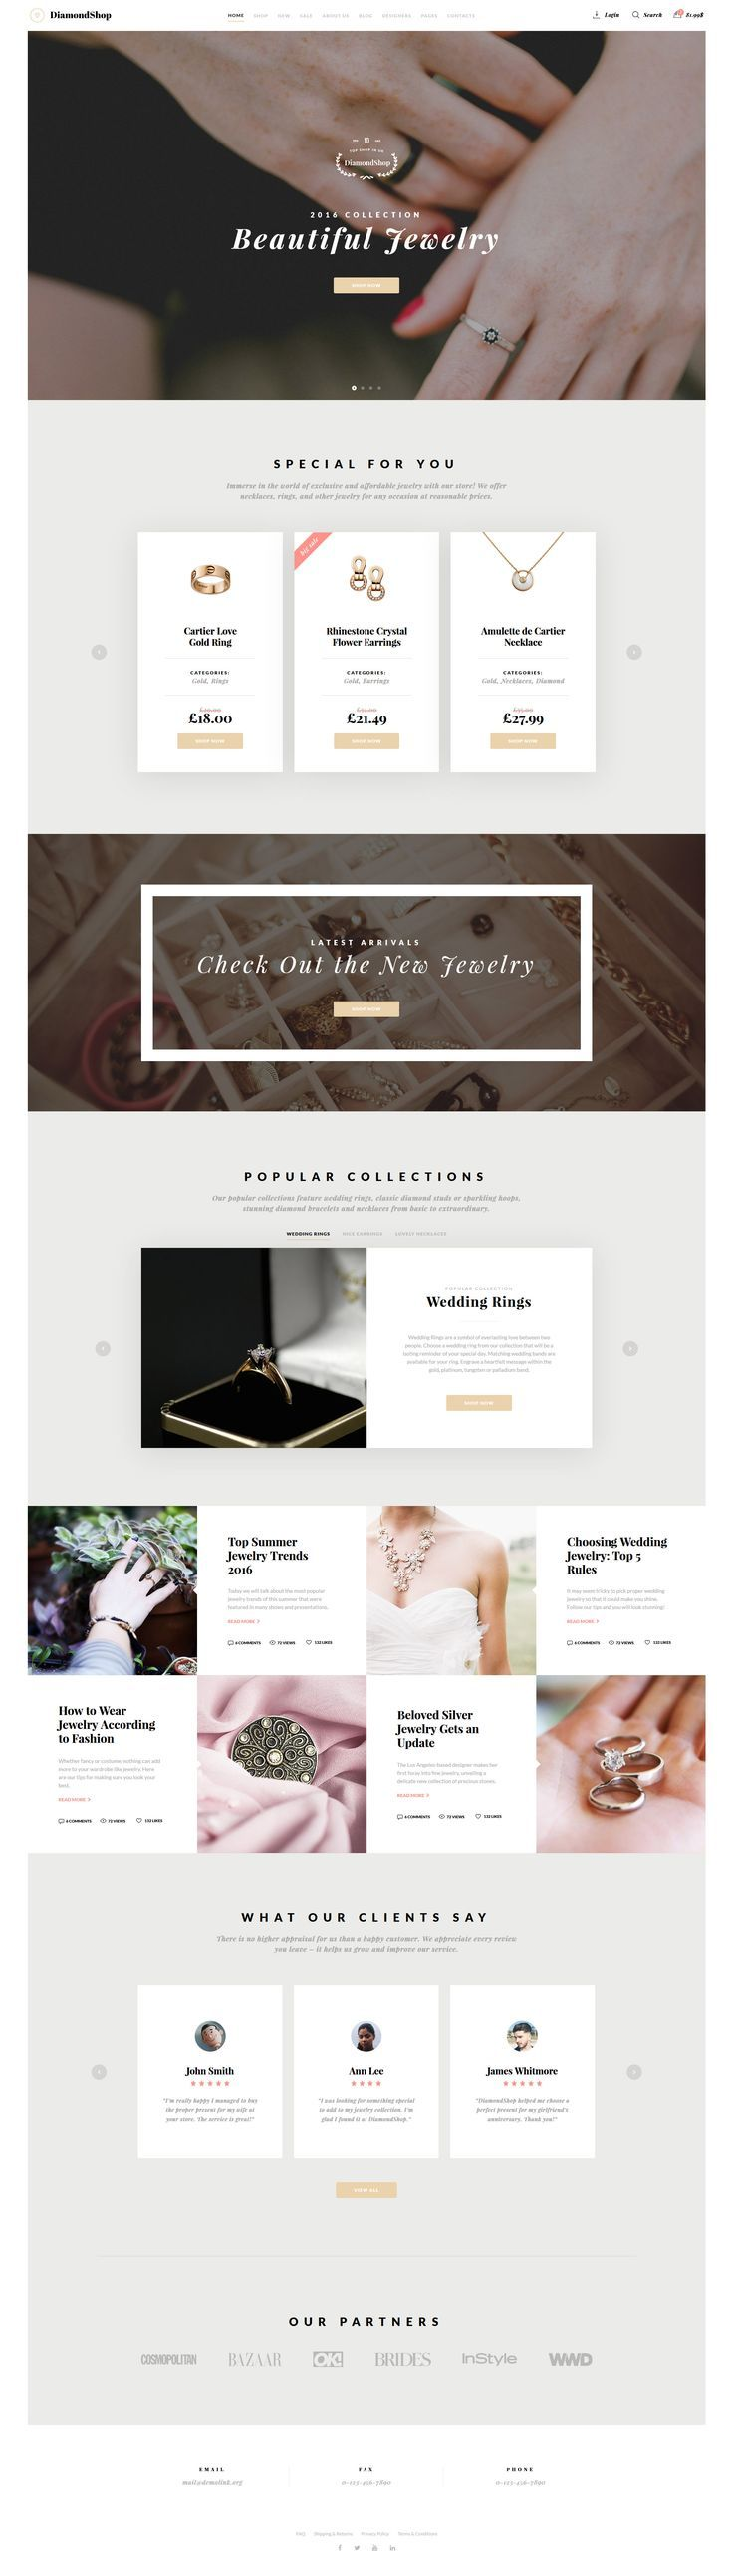 Website Templates Diamondshop  Beautiful Jewelry Responsive Website Template